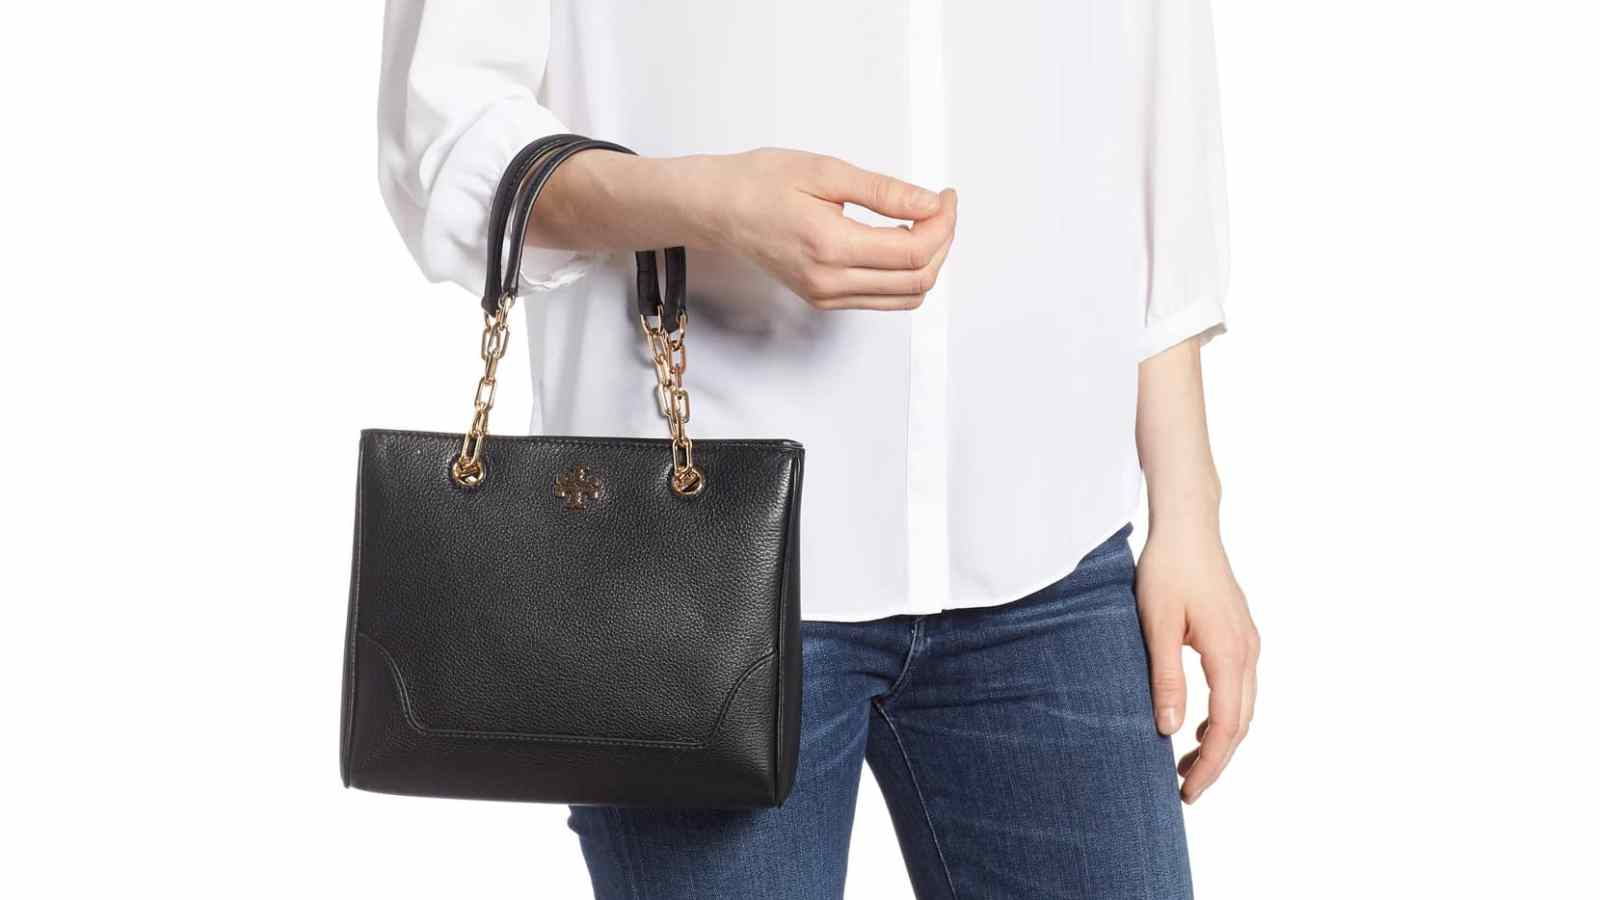 3c69f54e213 Shop This Tory Burch Leather Tote 50 Percent Off at Nordstrom